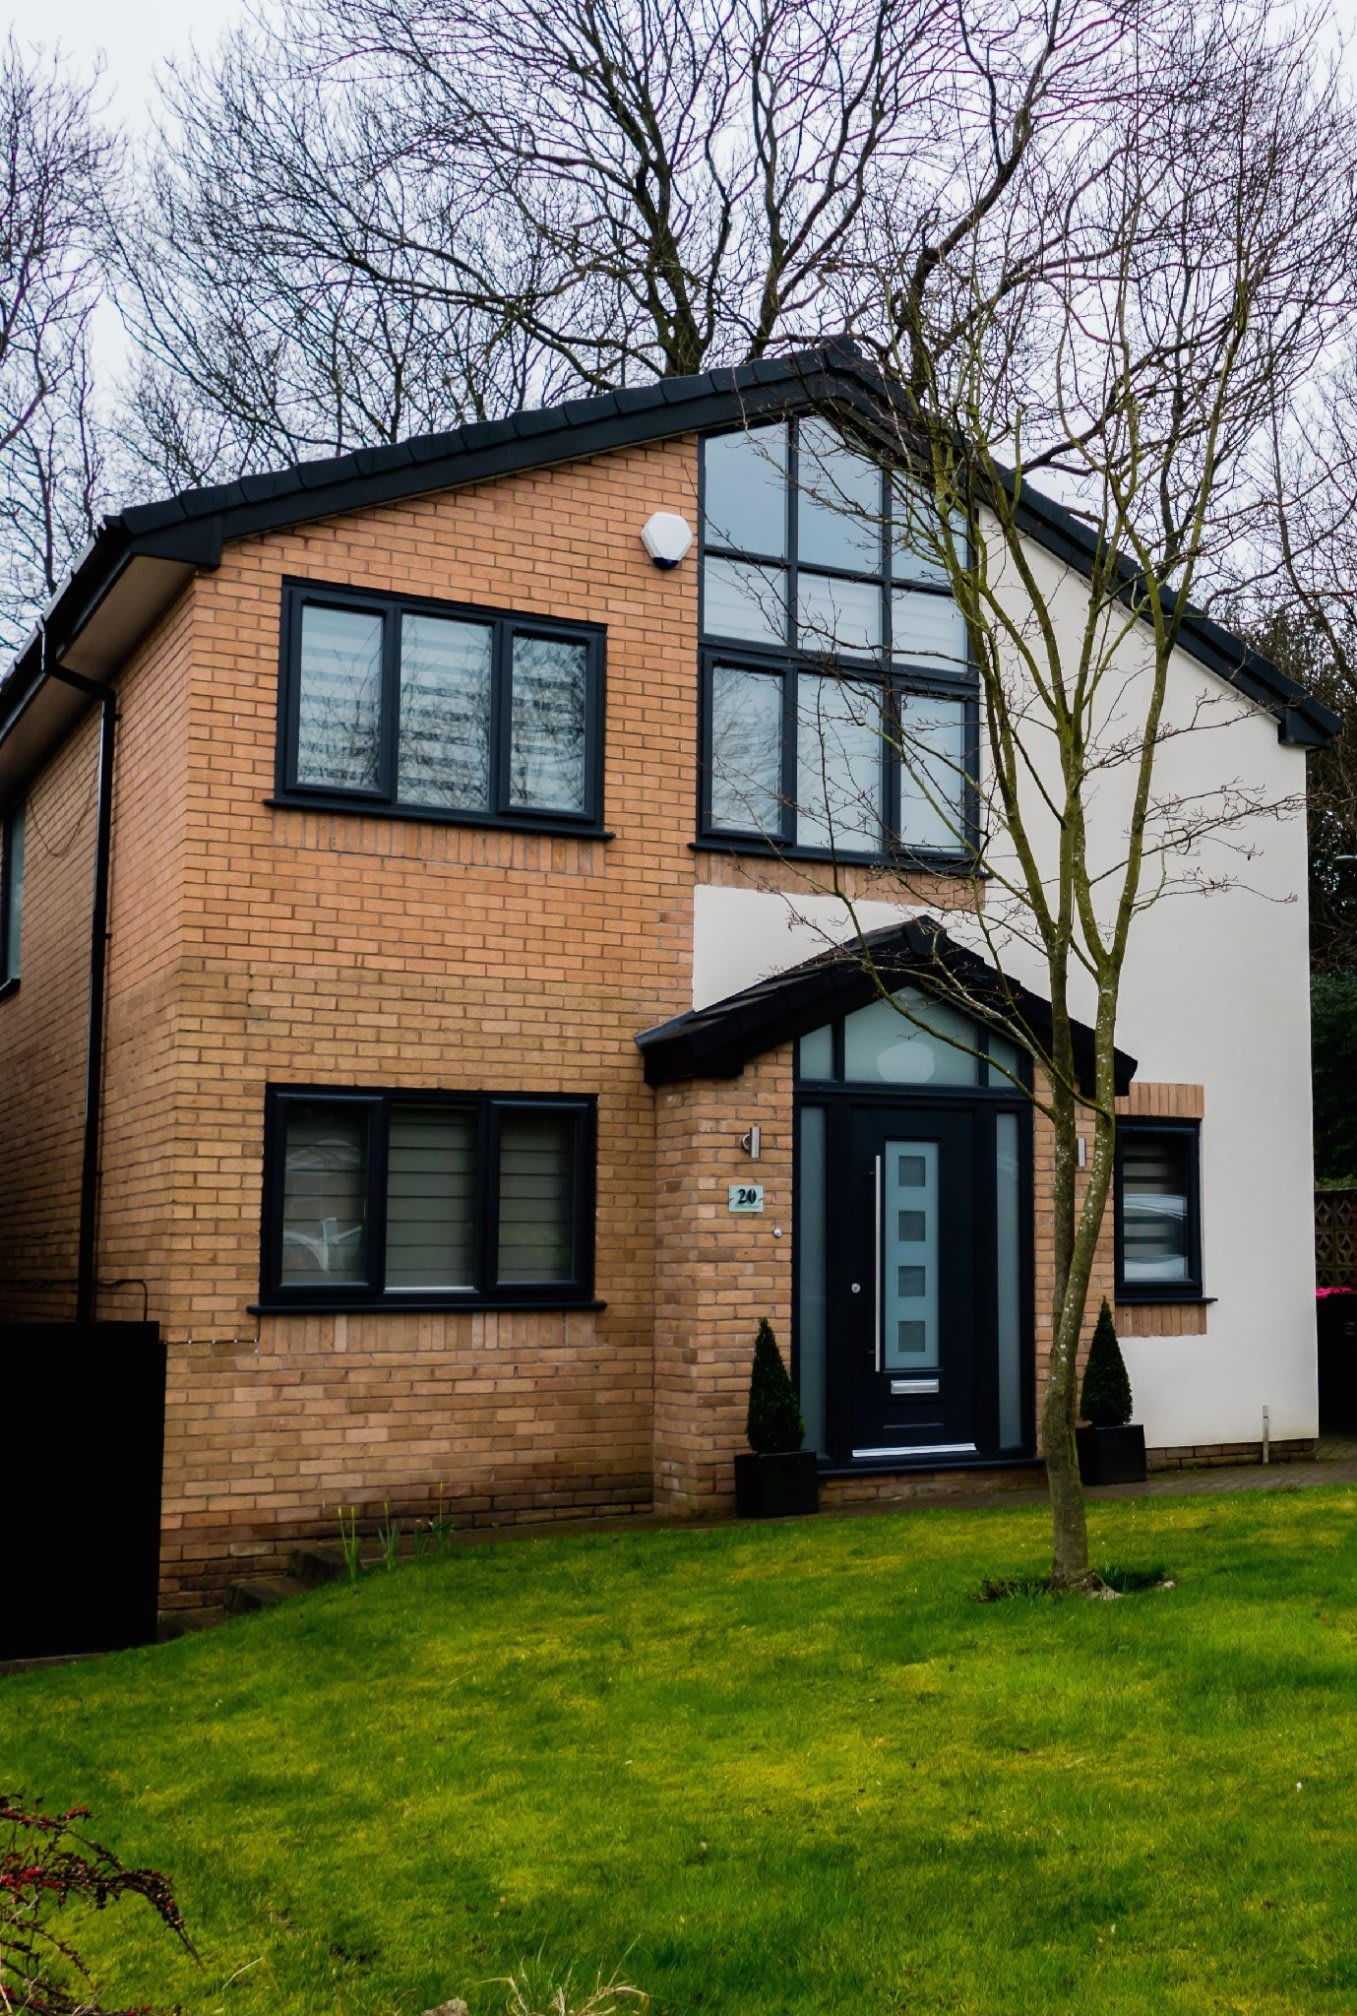 PAG Construction Design & Build   1A Chadwick Rd, Manchester M30 0NZ   +44 1282 930285